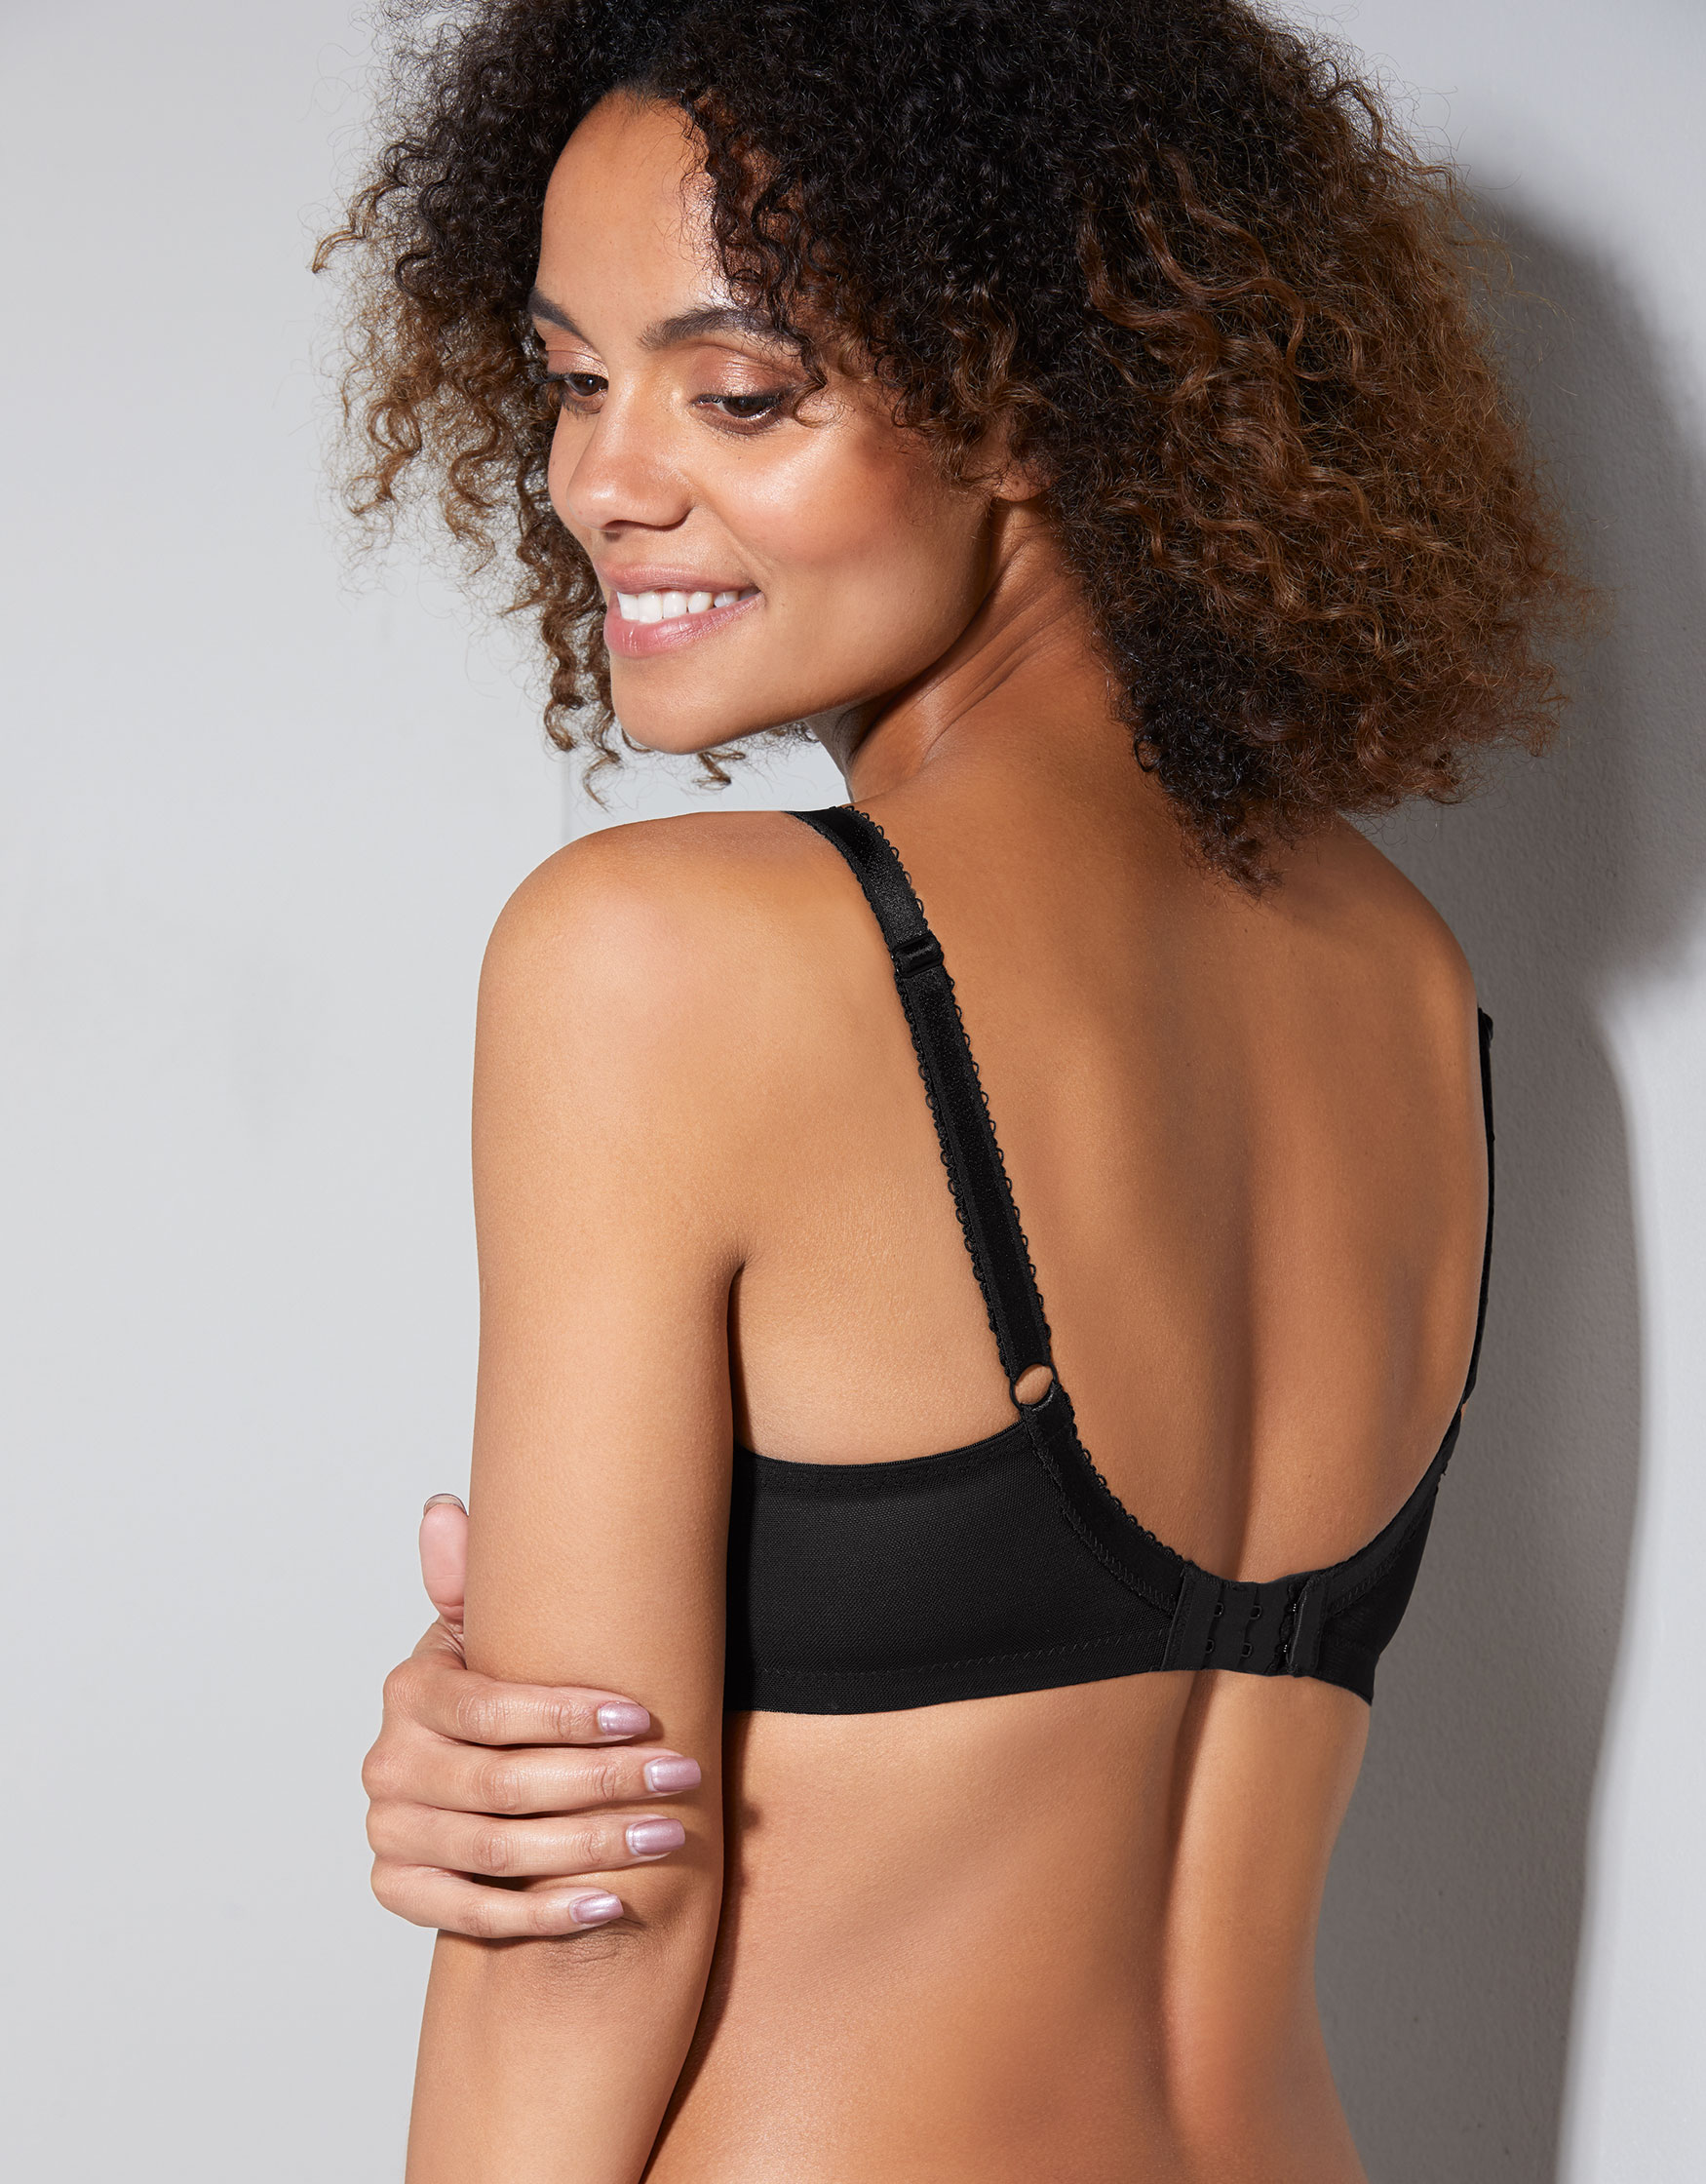 Womens Clara Full Cup Everyday Bra Panache Sale Footlocker Pictures Limited Edition Online Buy Cheap Enjoy Cheap Sale Buy nmlB8